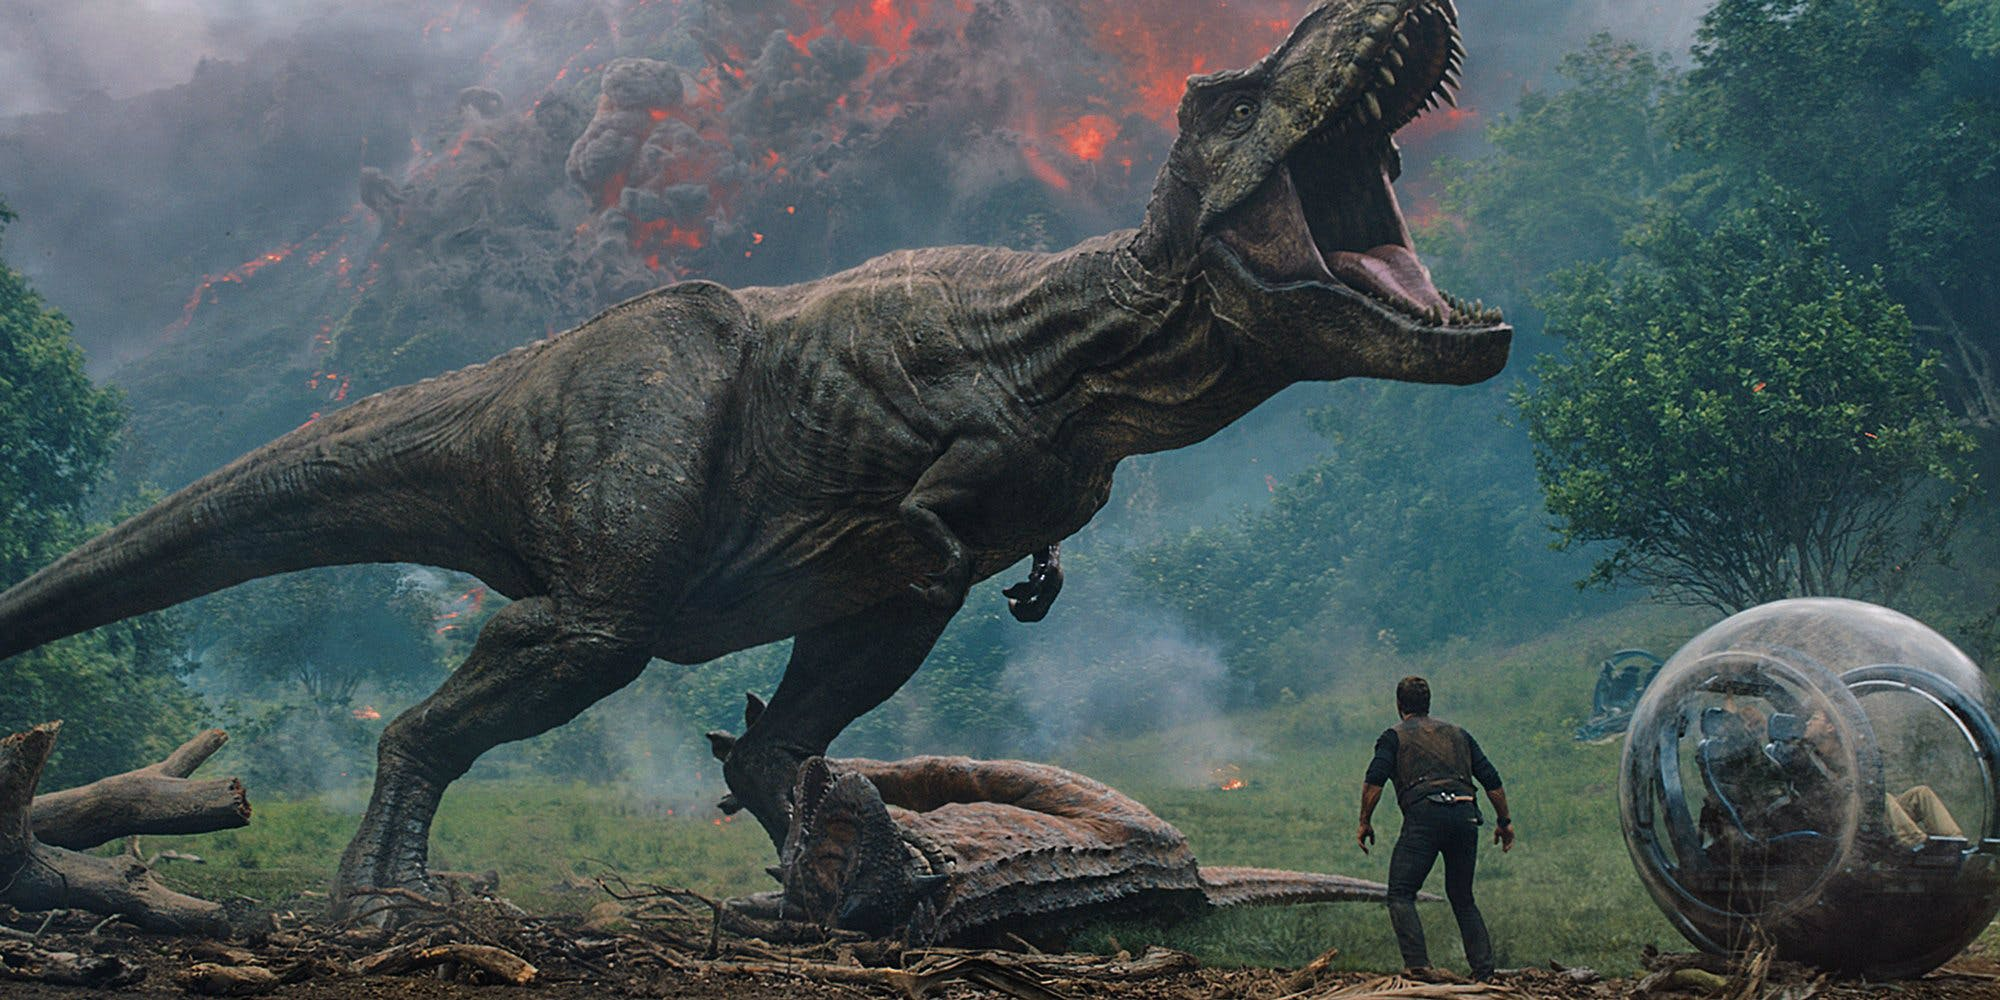 Jurassic World Fallen Kingdom Volcano and T Rex Movies Coming Out in 2018: What to Watch in Animation